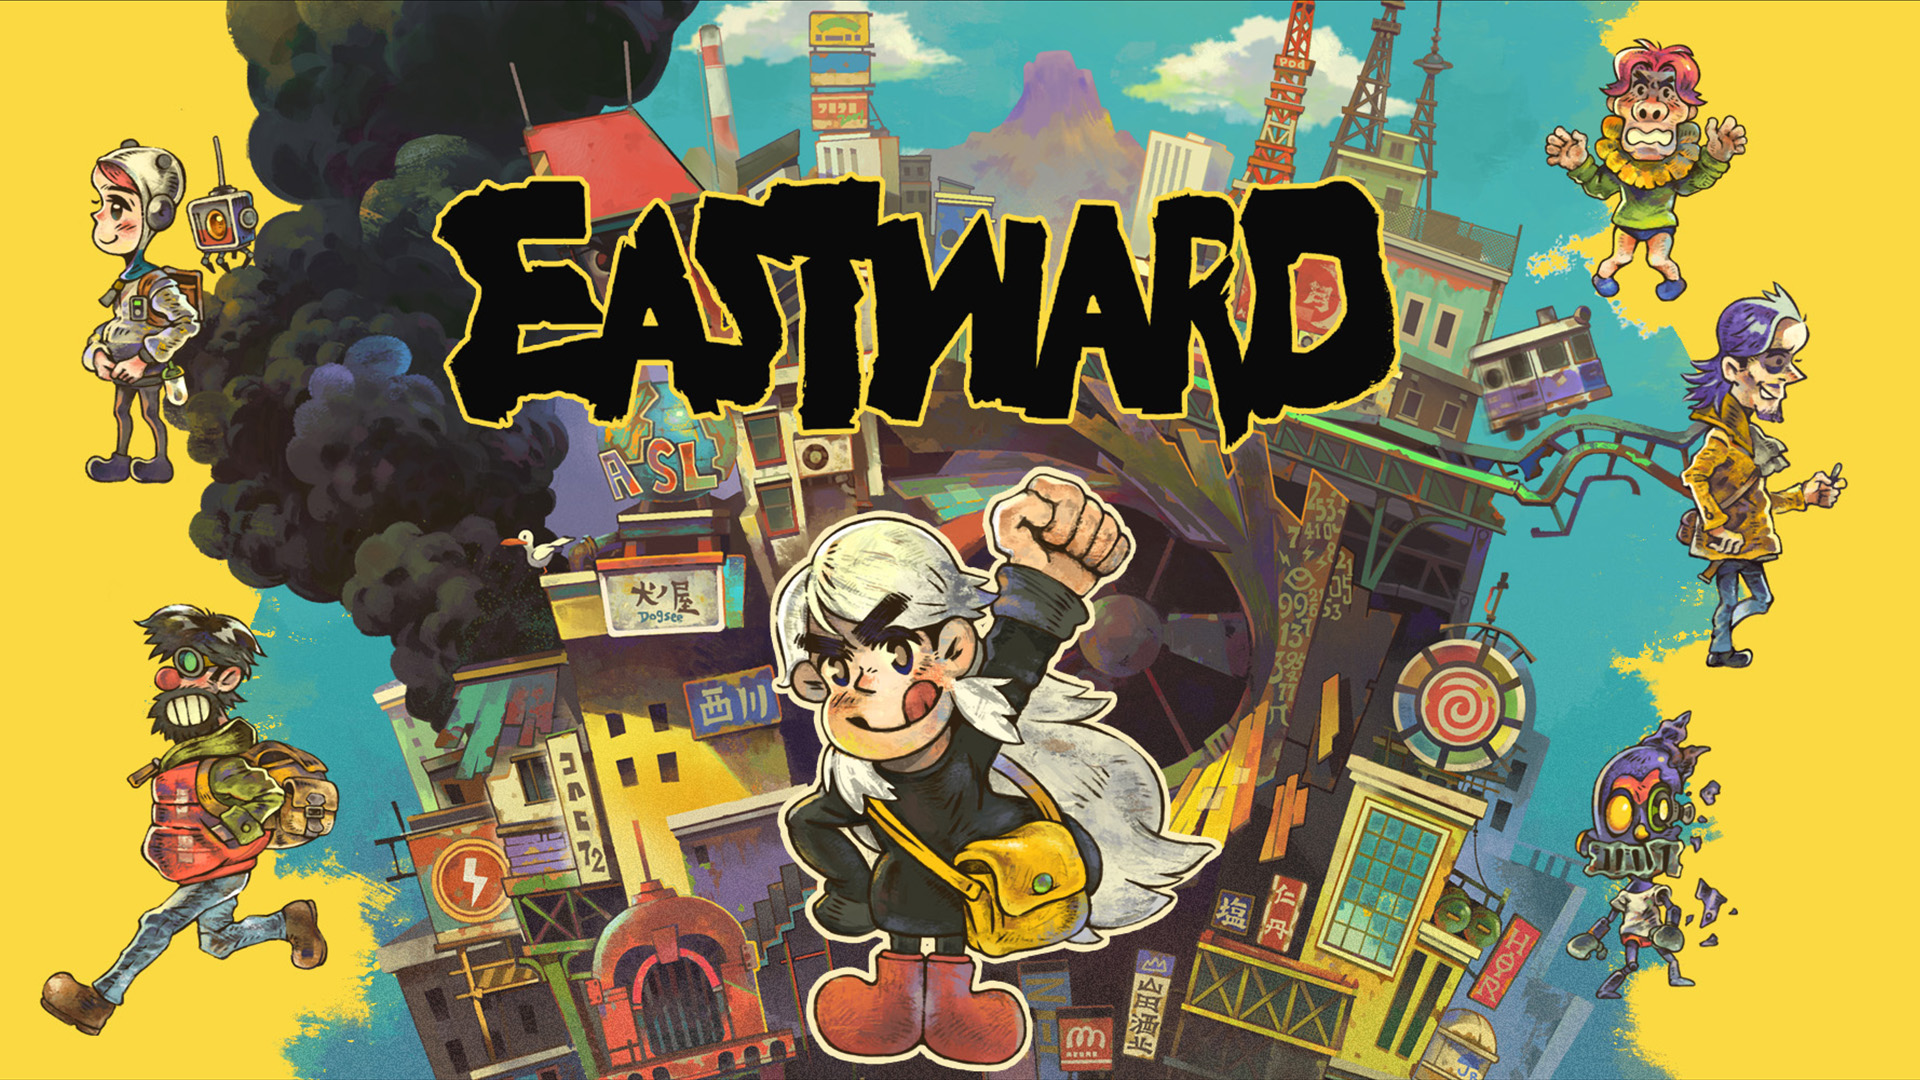 Eastward - How to get and use bombs